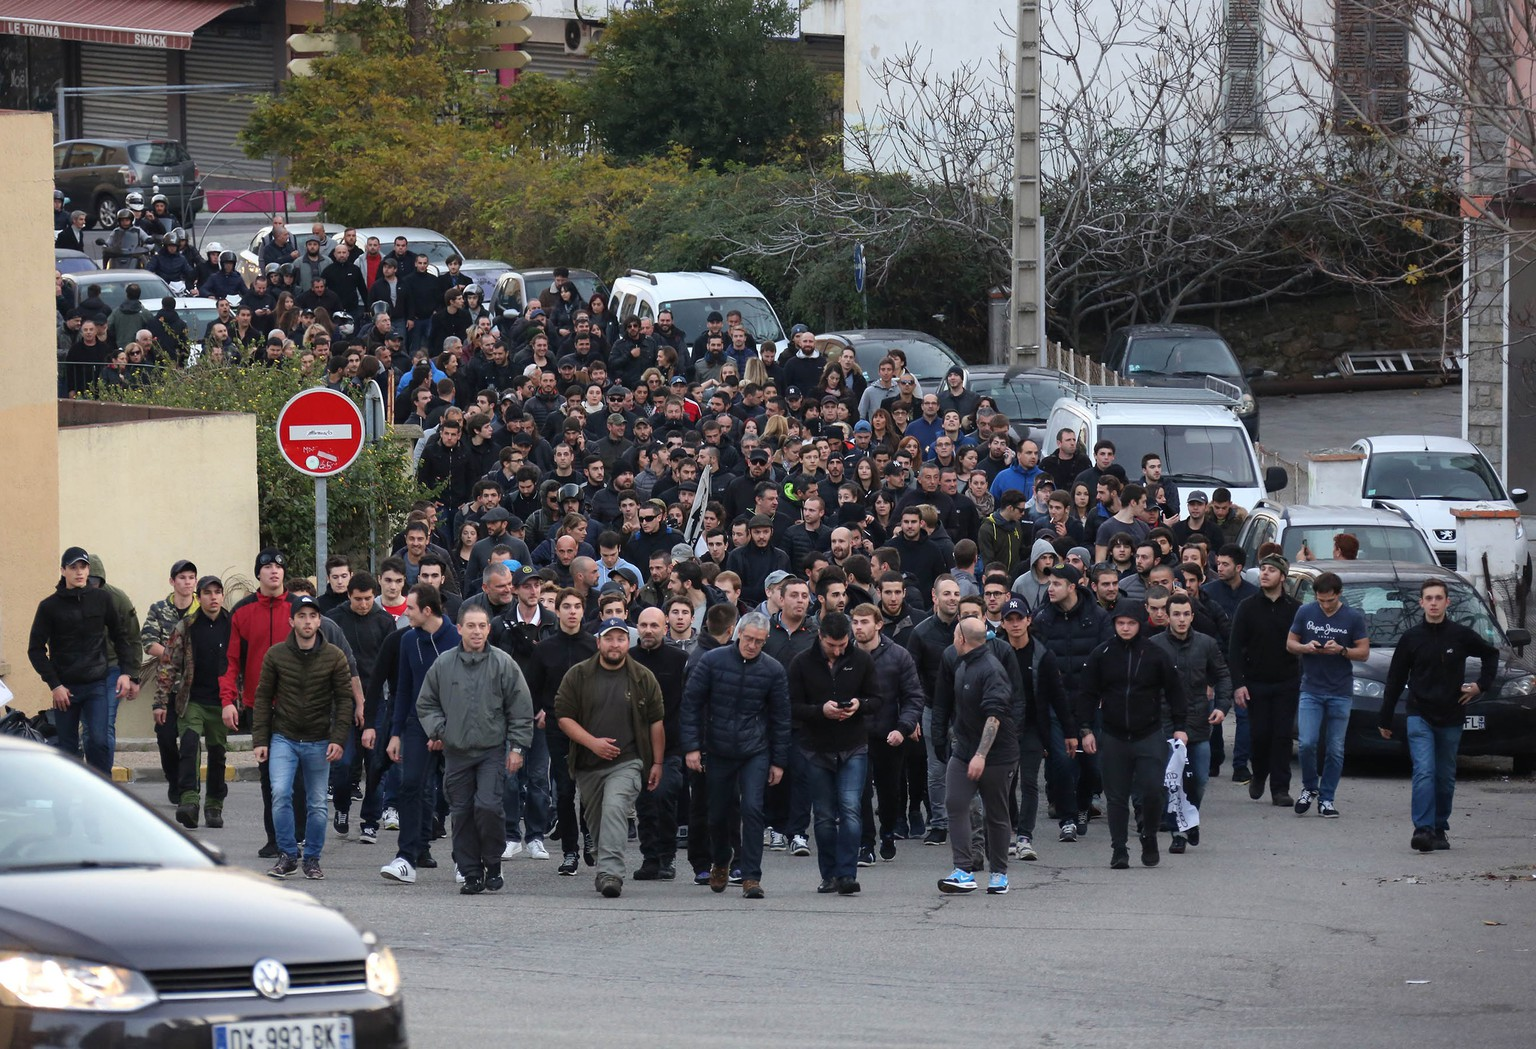 Demonstrators, most of them angry against Muslim residents, march in Ajaccio, on the French Mediterranean island of Corsica, Saturday, Dec. 26, 2015.  A crowd vandalized a Muslim prayer room in Corsica a day after an ambush left firefighters injured on the French island. (AP Photo/Jean-Pierre Belzit)